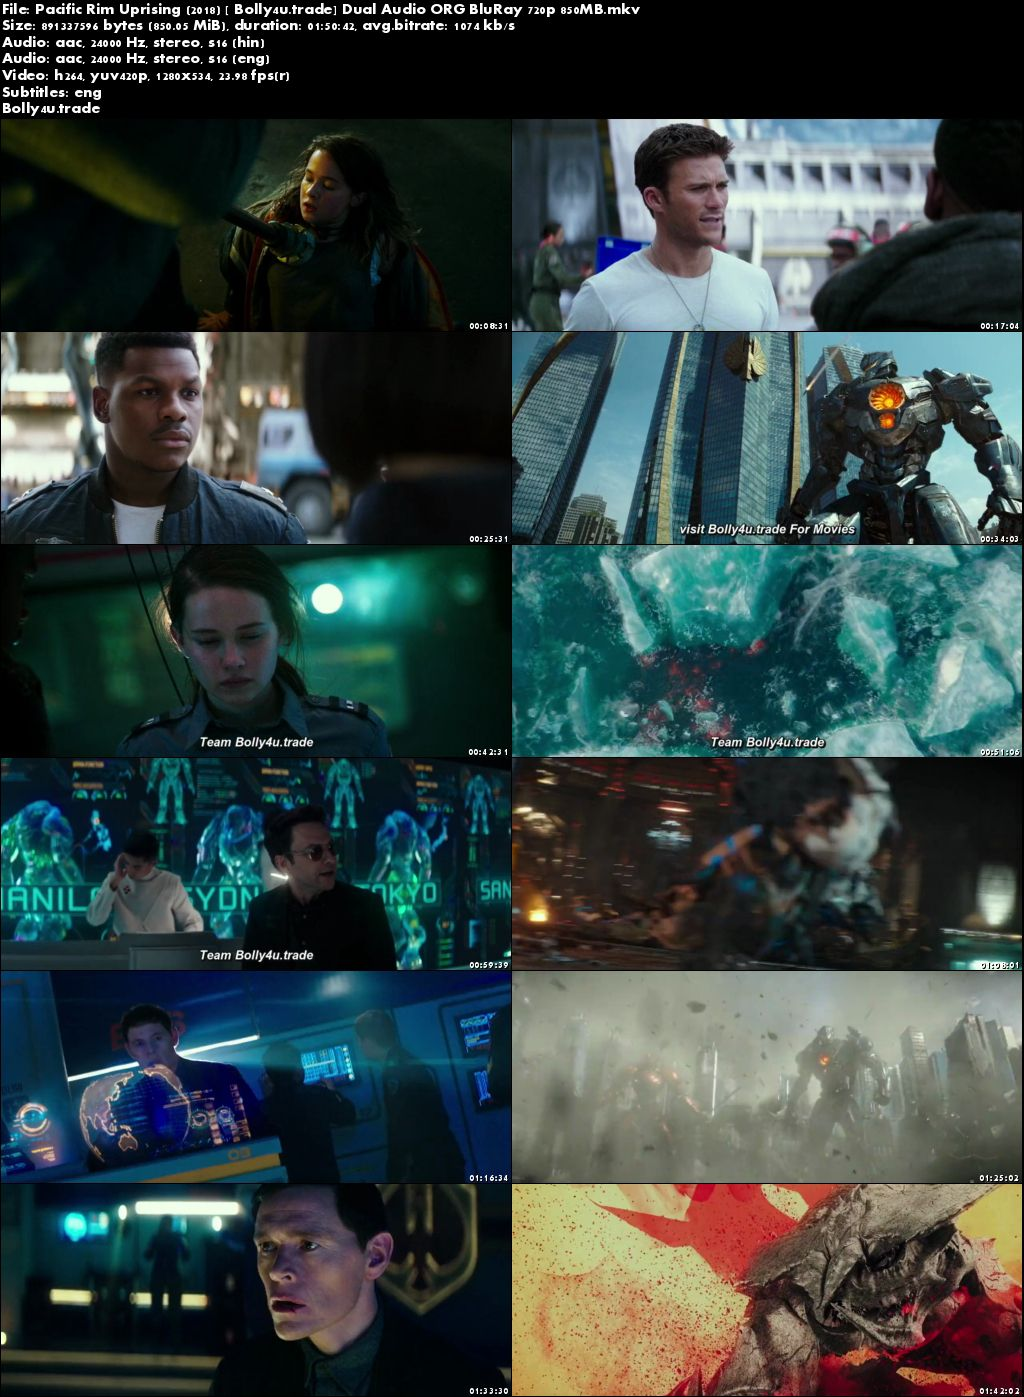 Pacific Rim Uprising 2018 BRRip 850Mb Hindi Dual Audio ORG 720p ESub Download